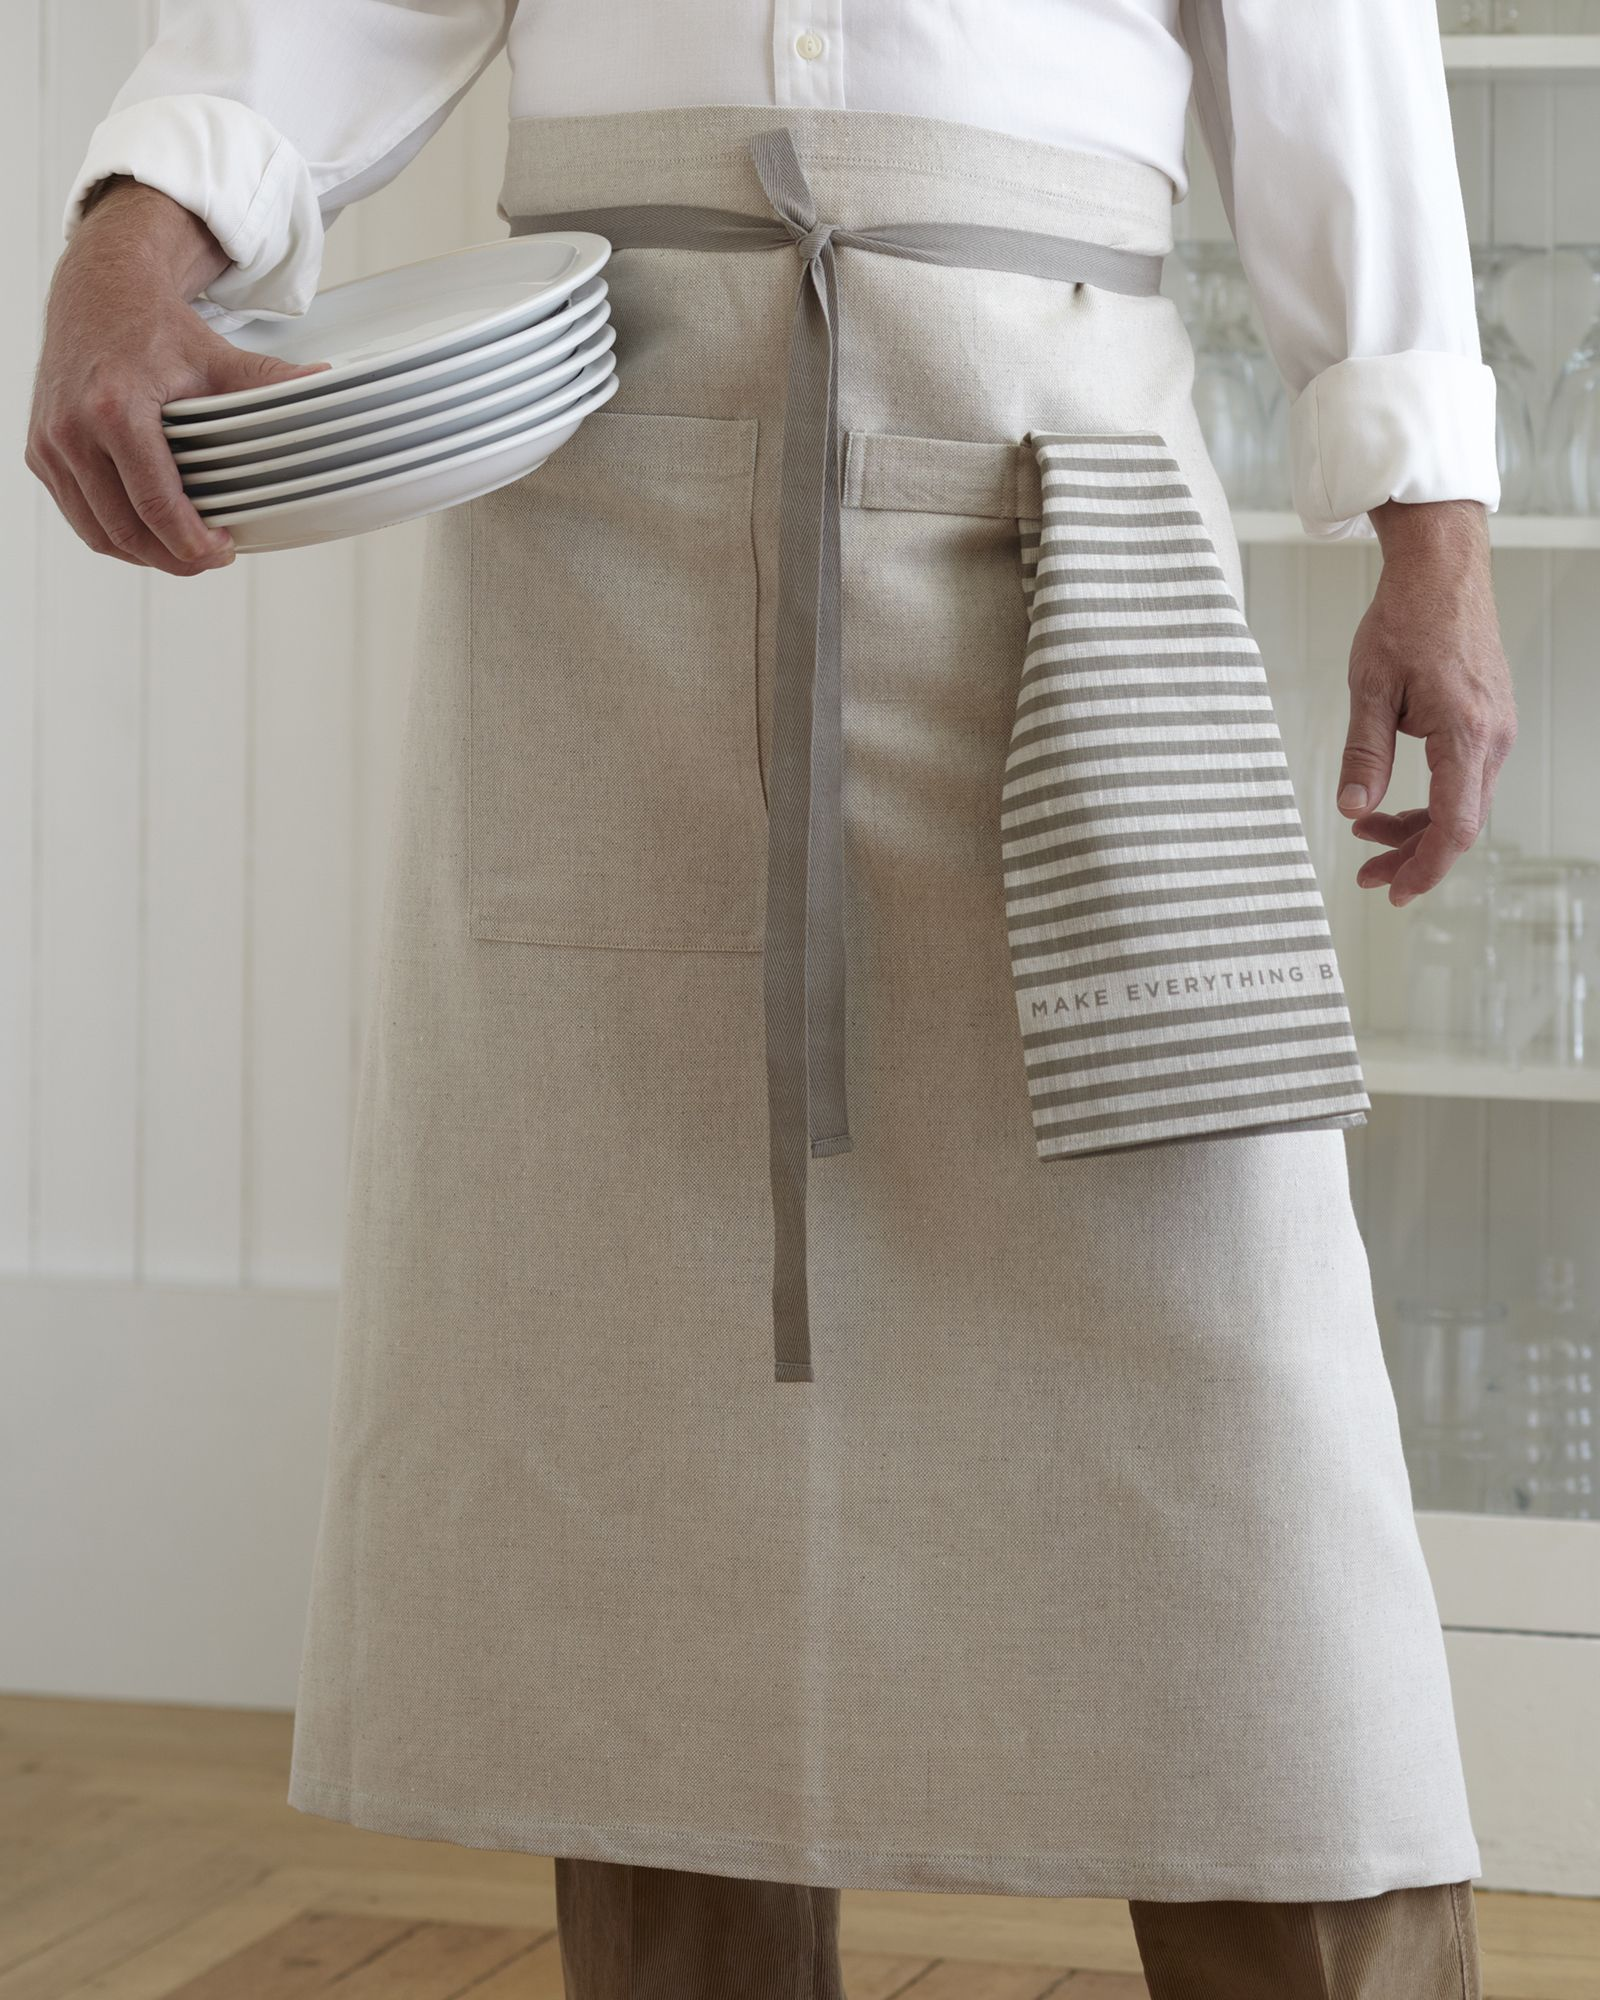 White apron hours - Aprons